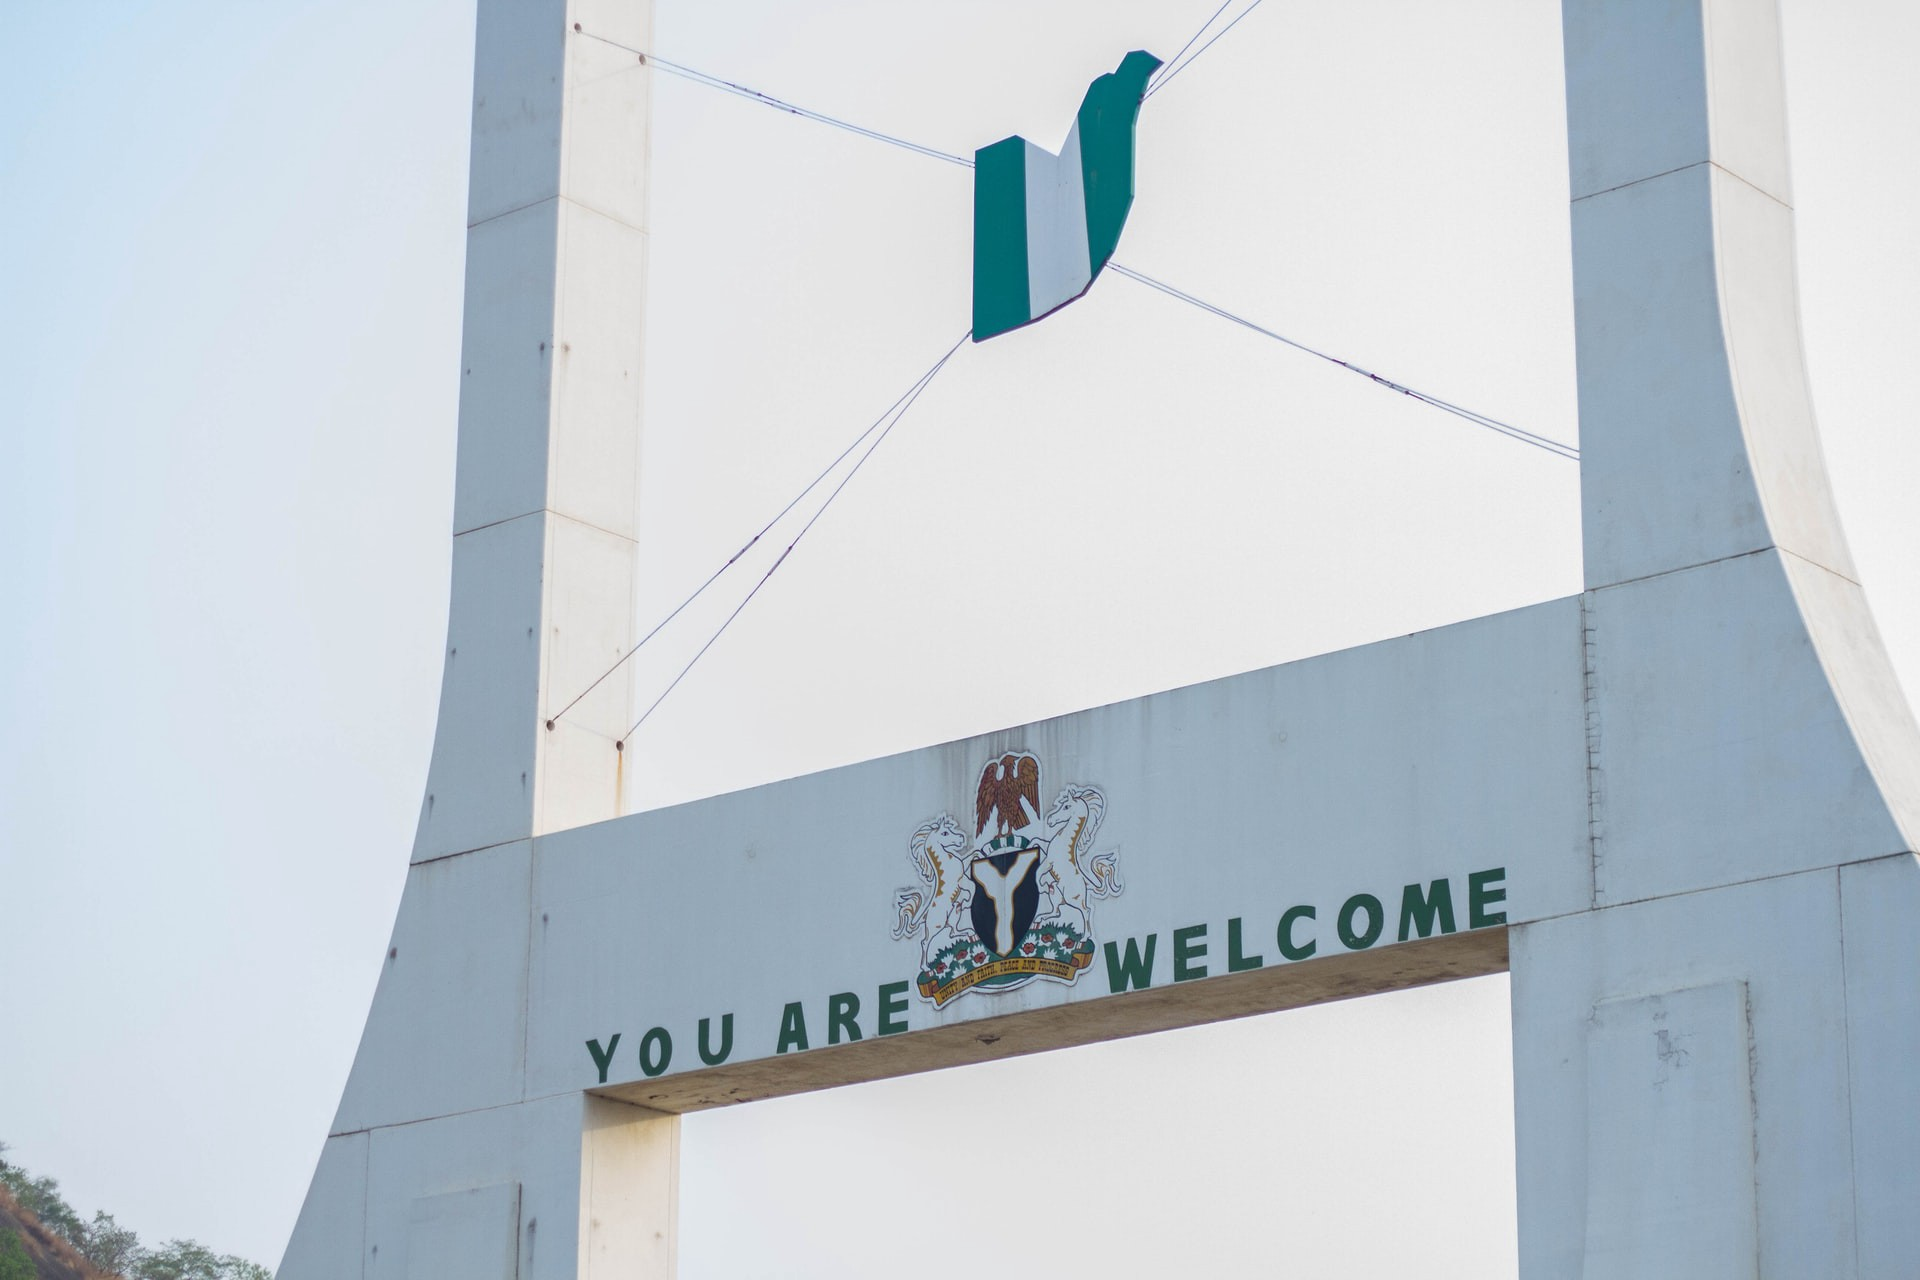 Welcome to Nigeria architecture, with green white green